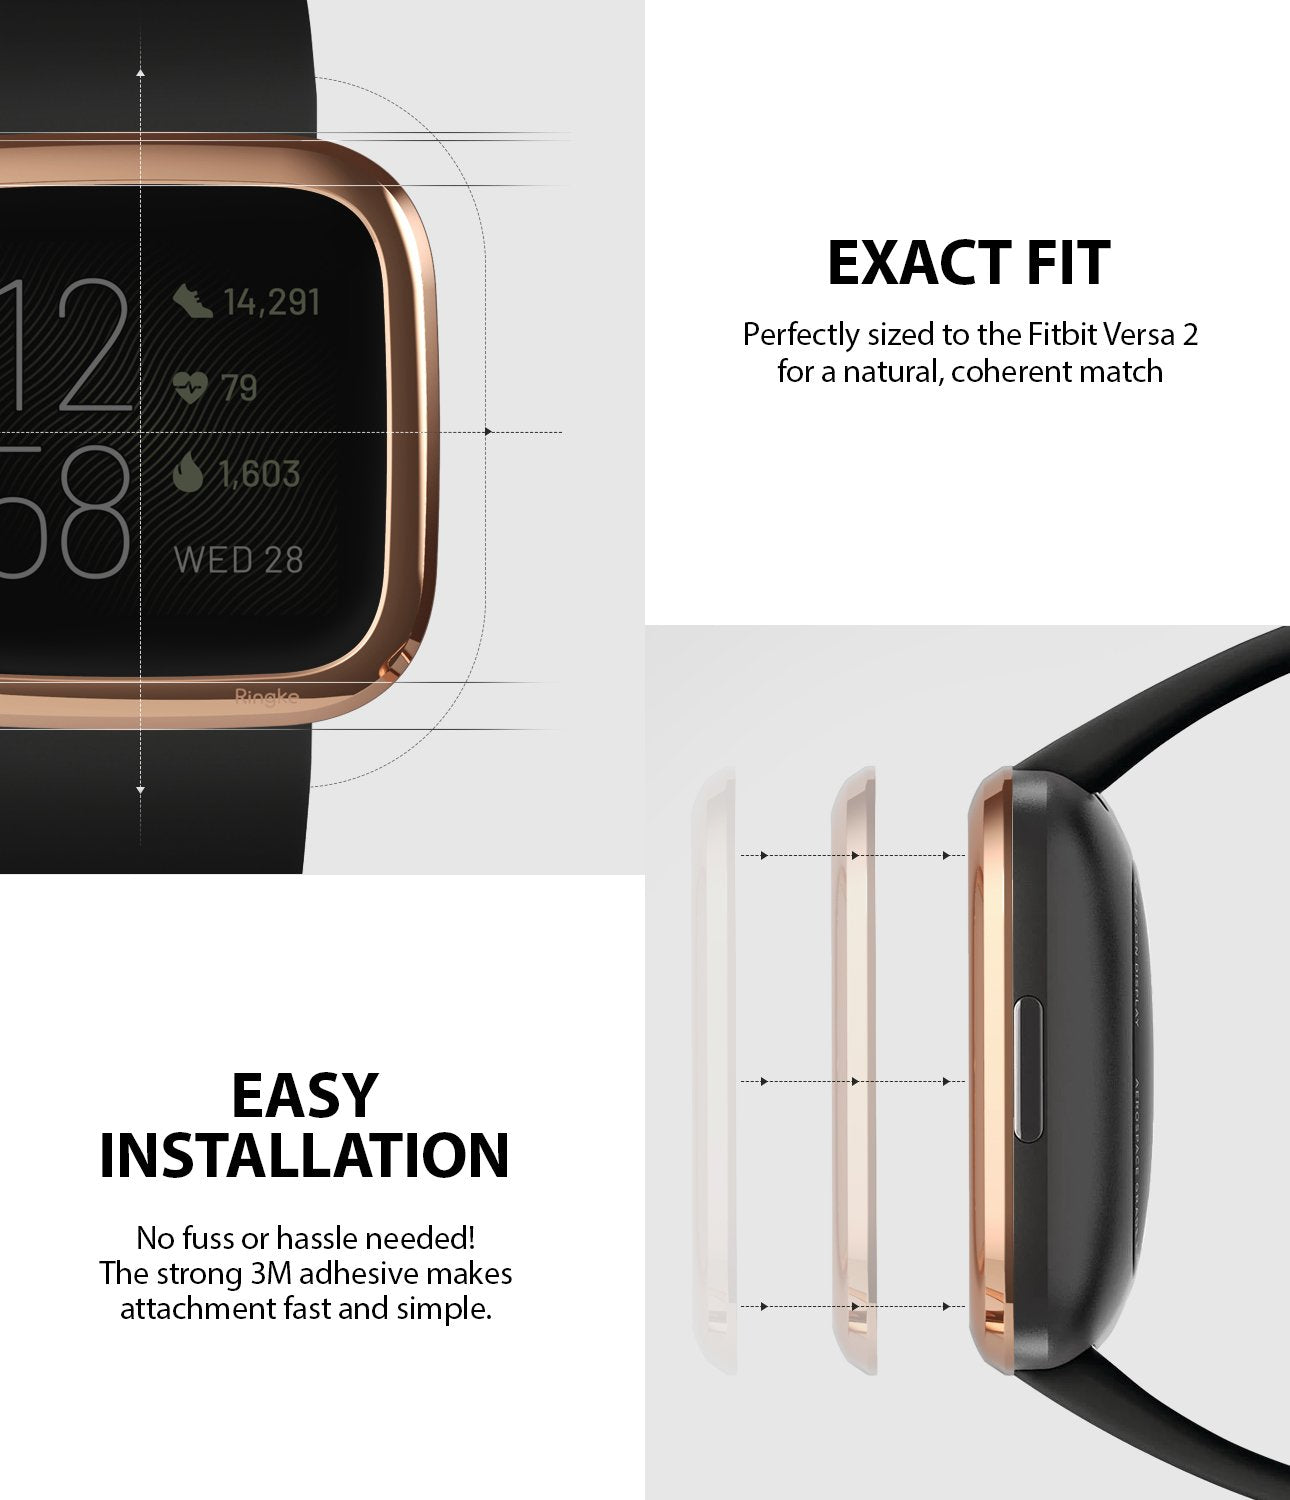 Ringke Bezel Styling Fitbit Versa 2, Full Stainless Steel Frame, Rose Gold, Stainless Steel, 2-02 ST,exact fit